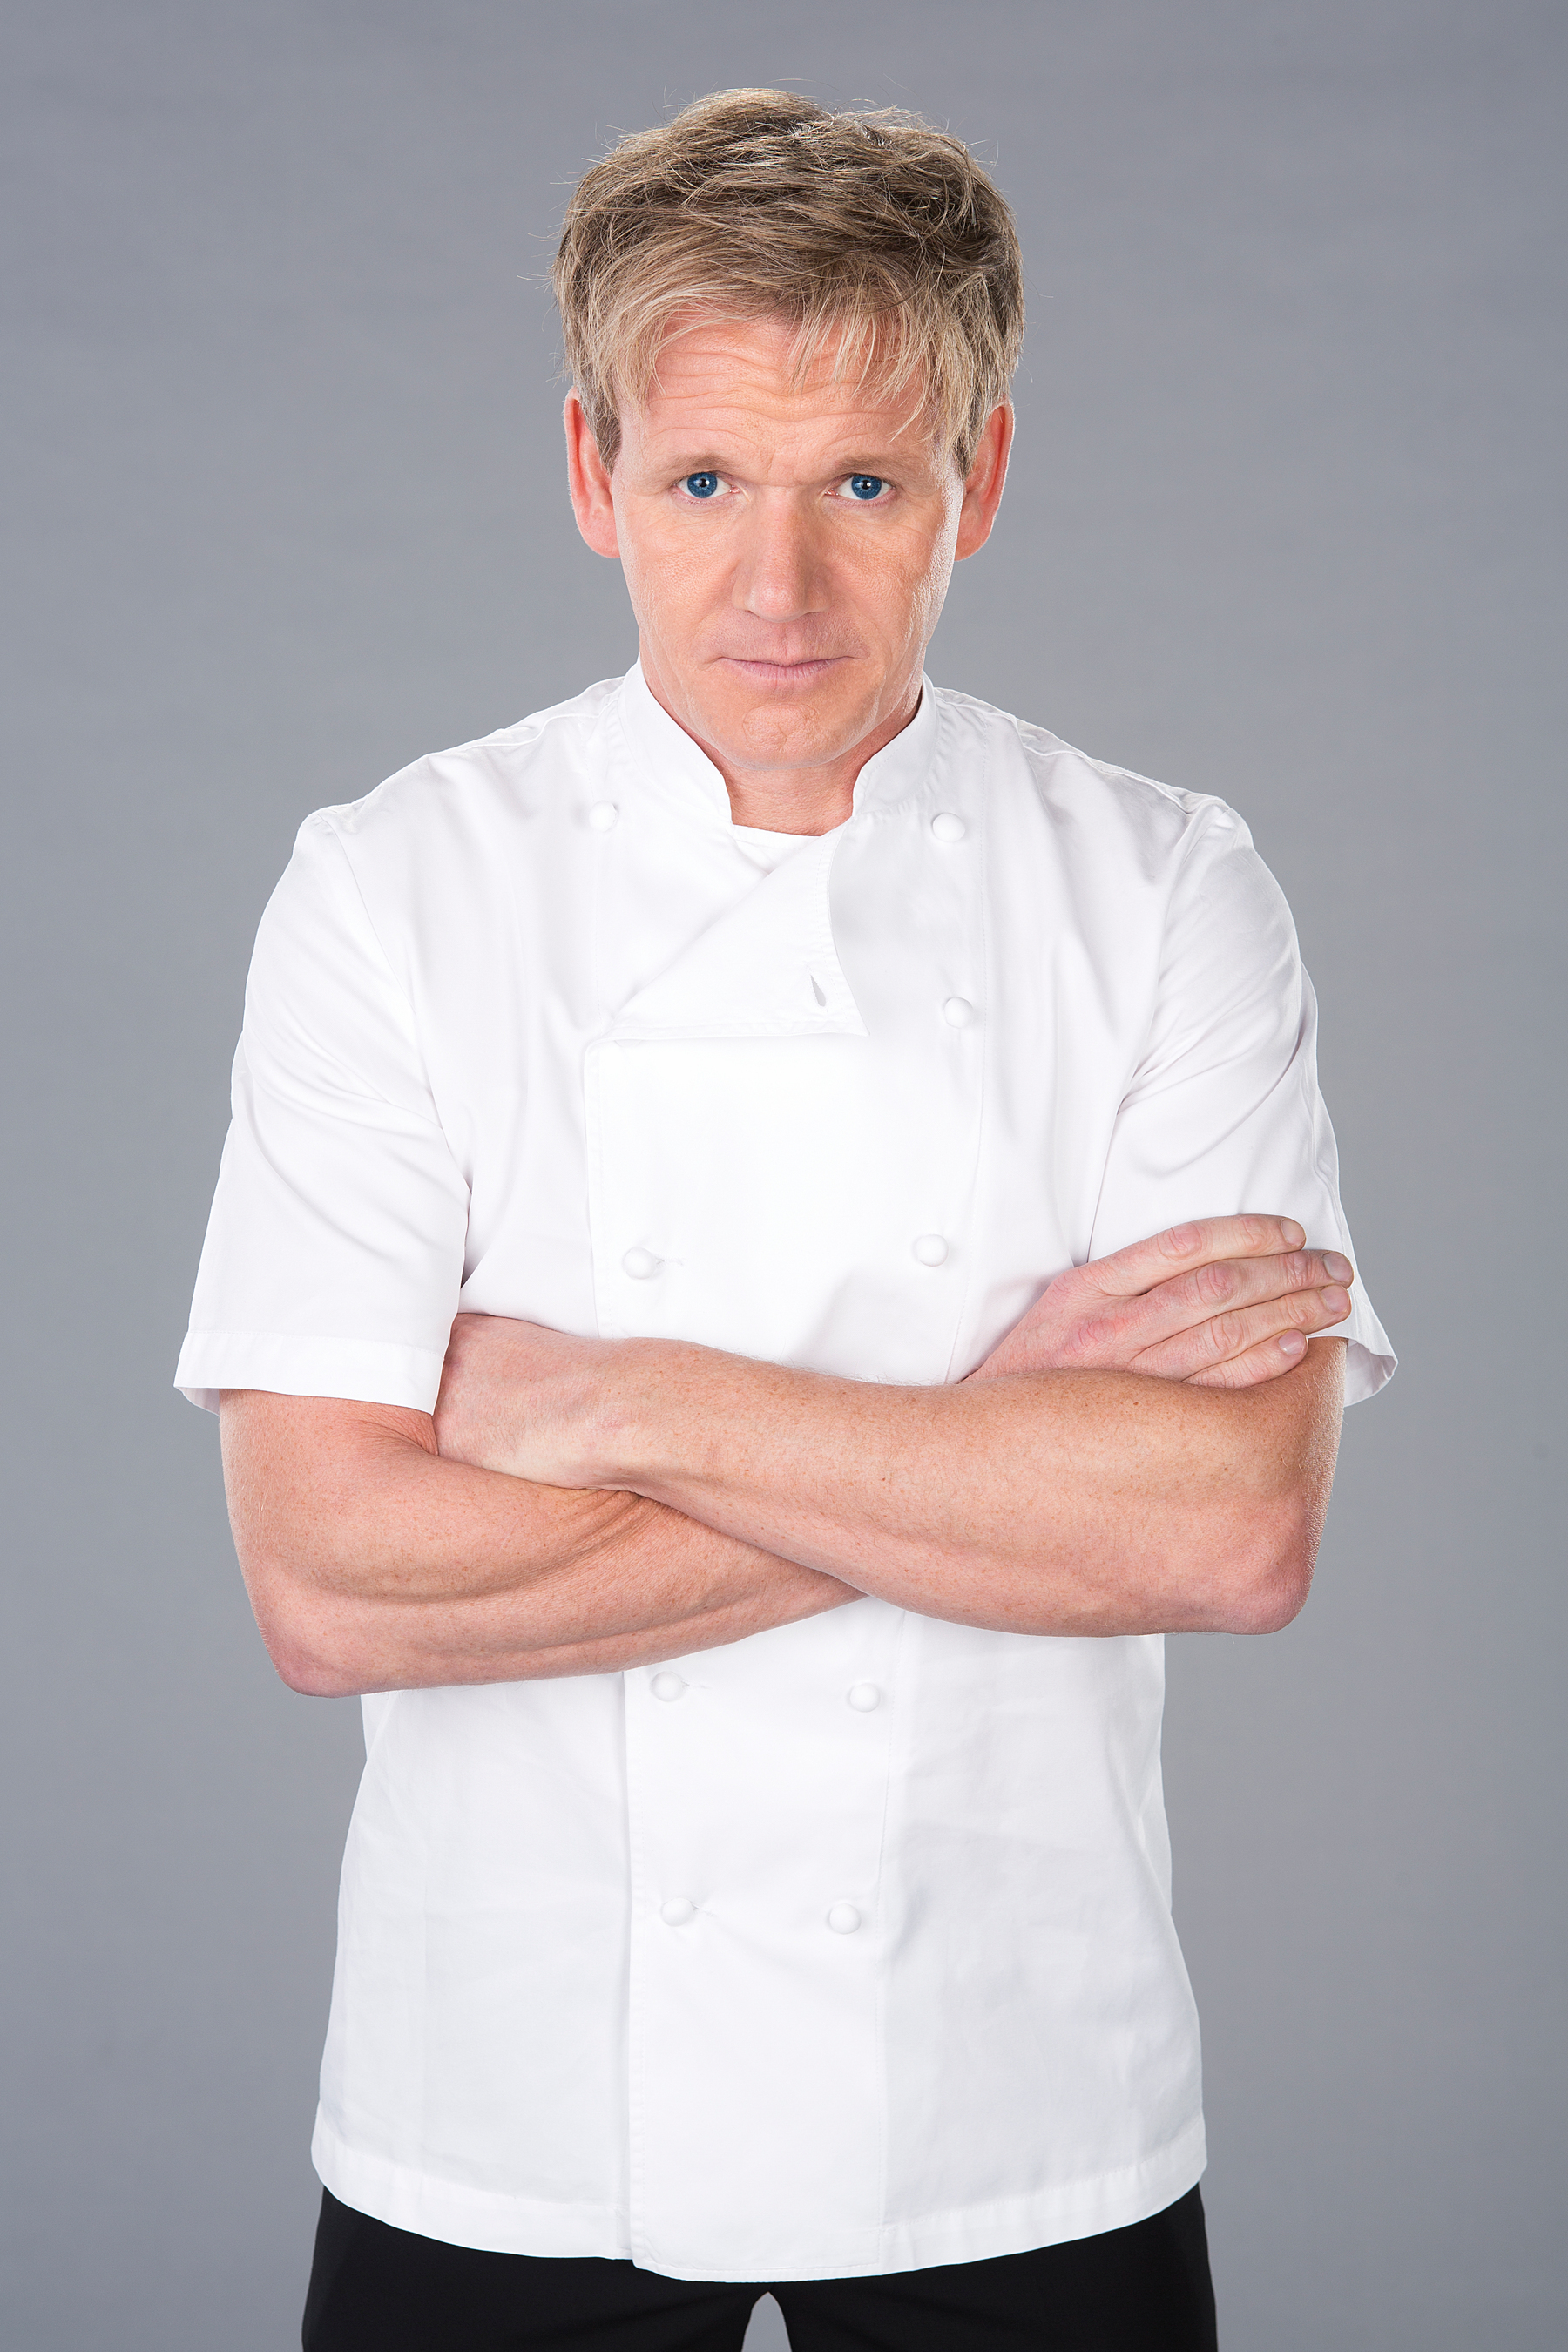 Gordon Ramsay Group Expands Into Asia (PRNewsFoto/Gordon Ramsey Group) (PRNewsFoto/Gordon Ramsey Group)